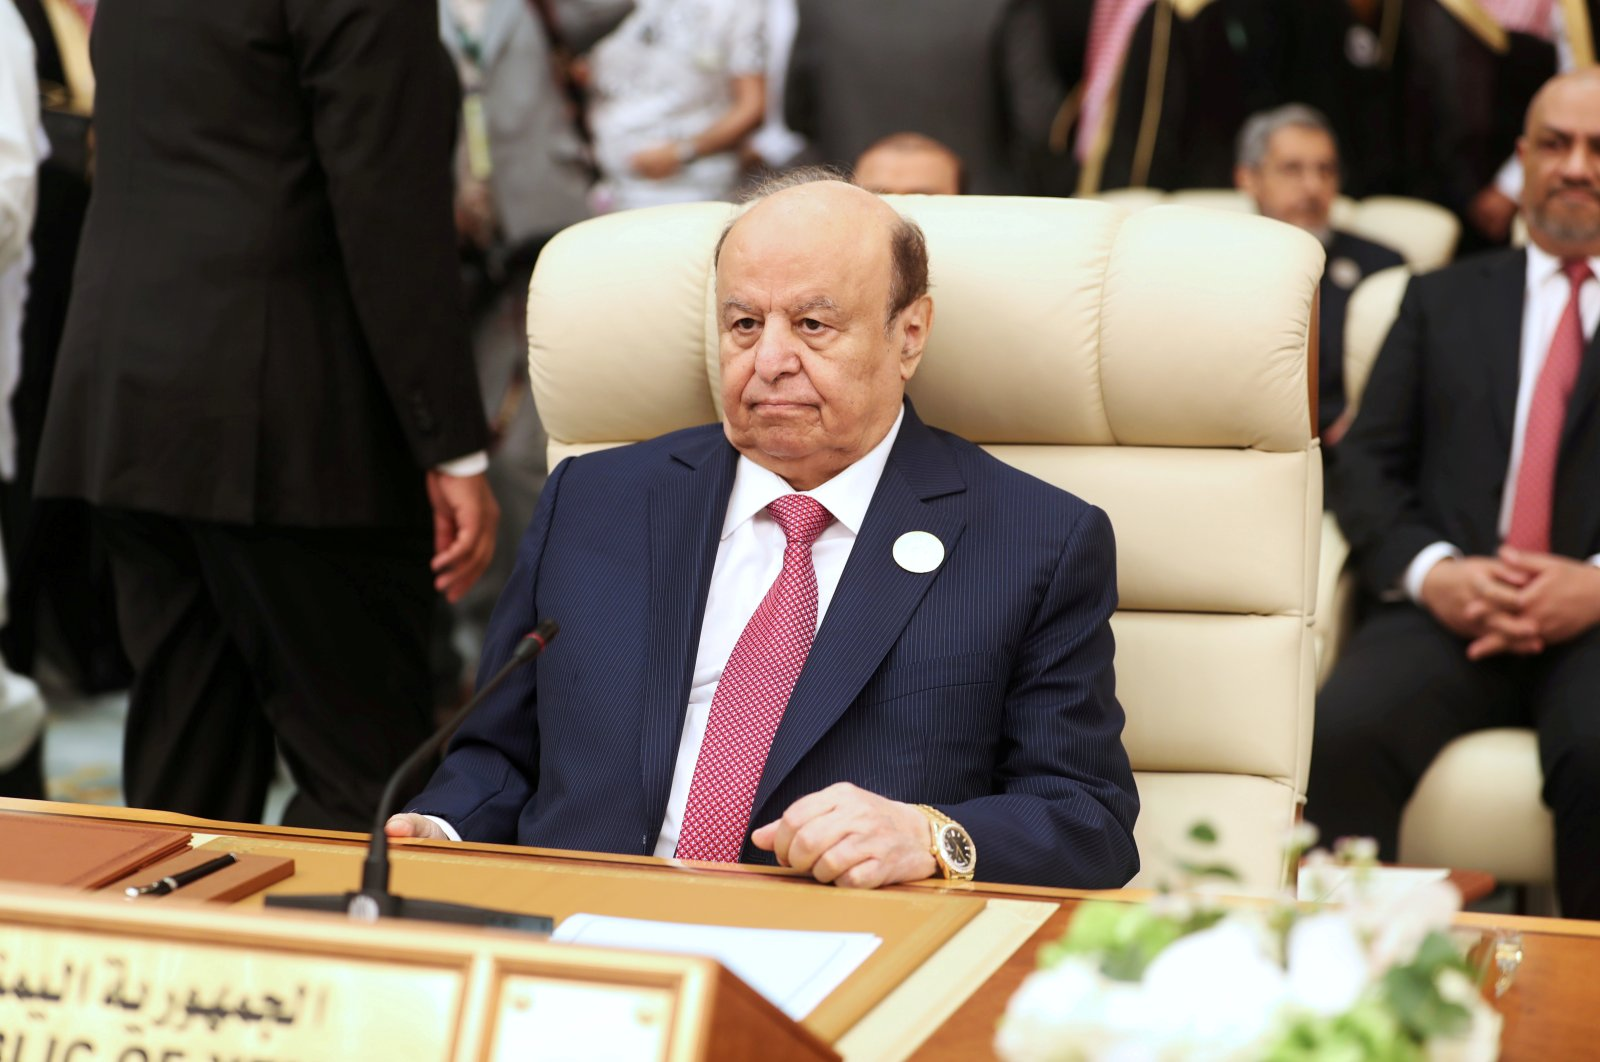 Yemeni President Abed Rabbo Mansour Hadi attends the Arab summit in Mecca, Saudi Arabia, May 31, 2019. (Reuters Photo)